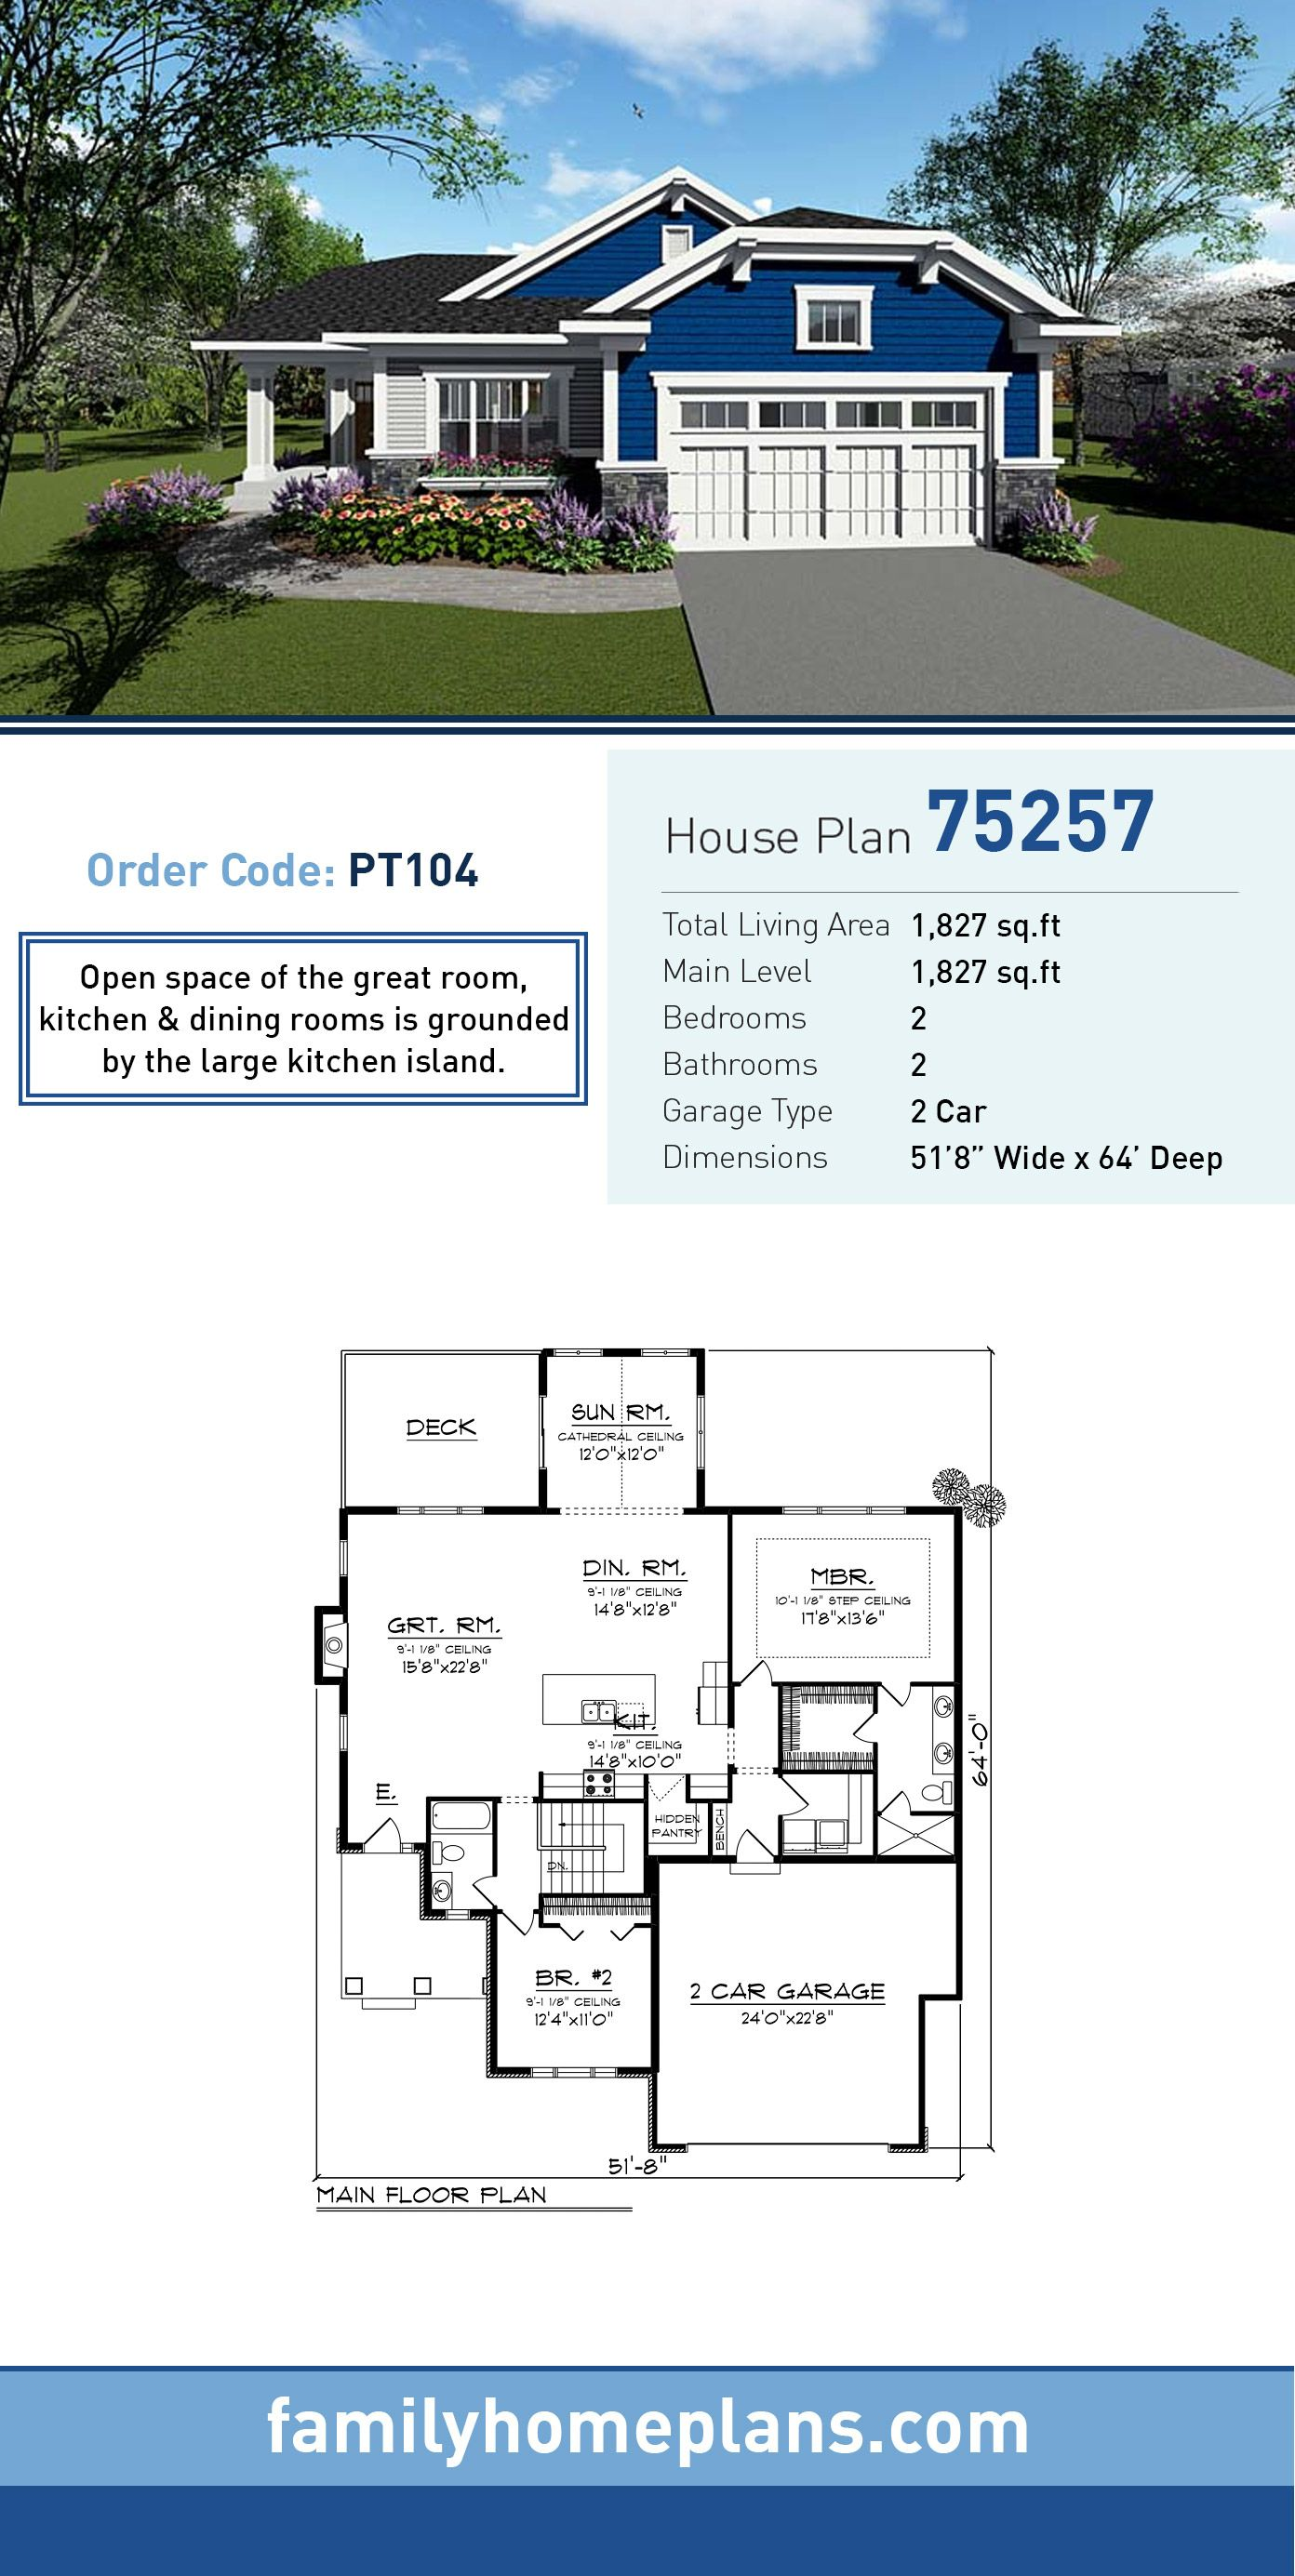 Cottage Country Craftsman House Plan 75257 | Large kitchen island ...